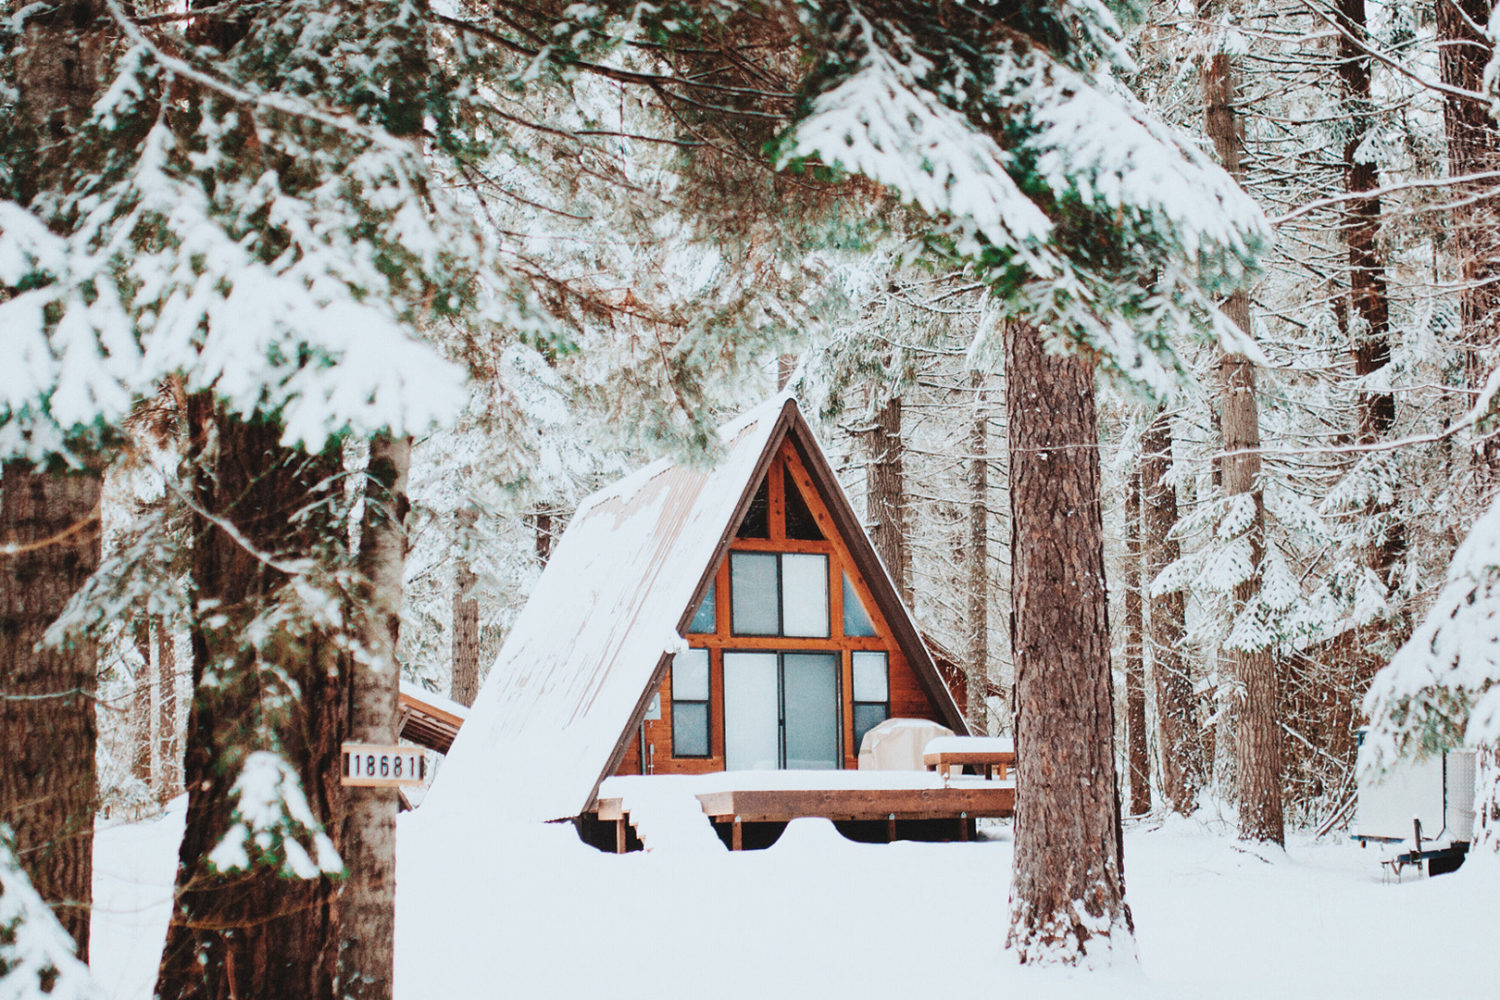 19 cozy winter cabins that make the cold enjoyable